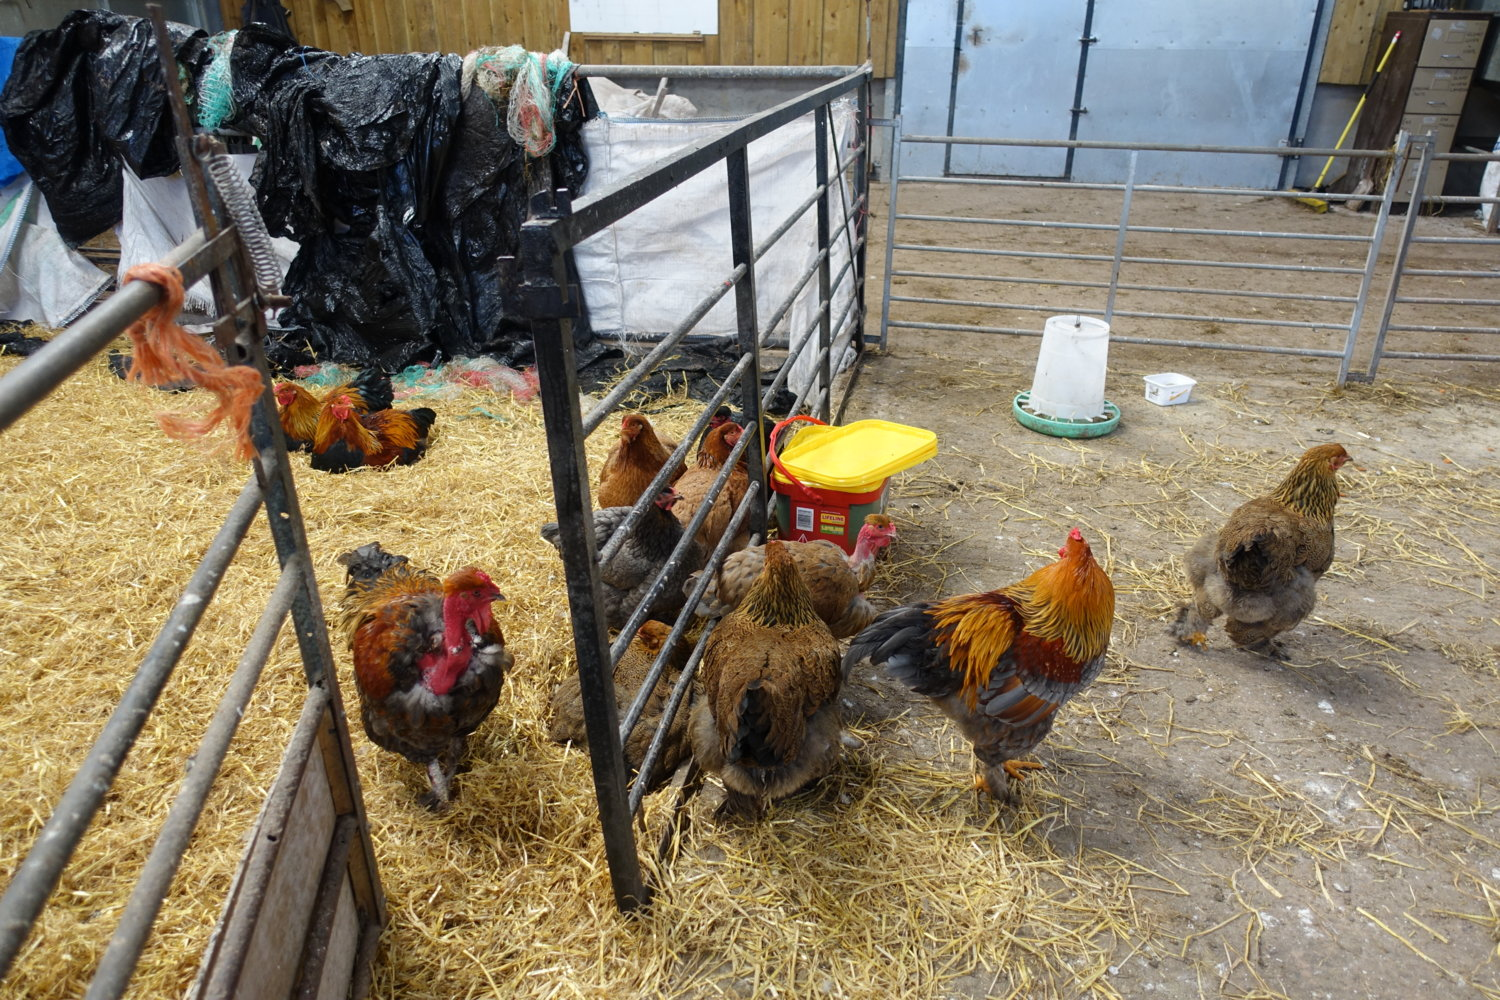 Chickens in shed.jpg